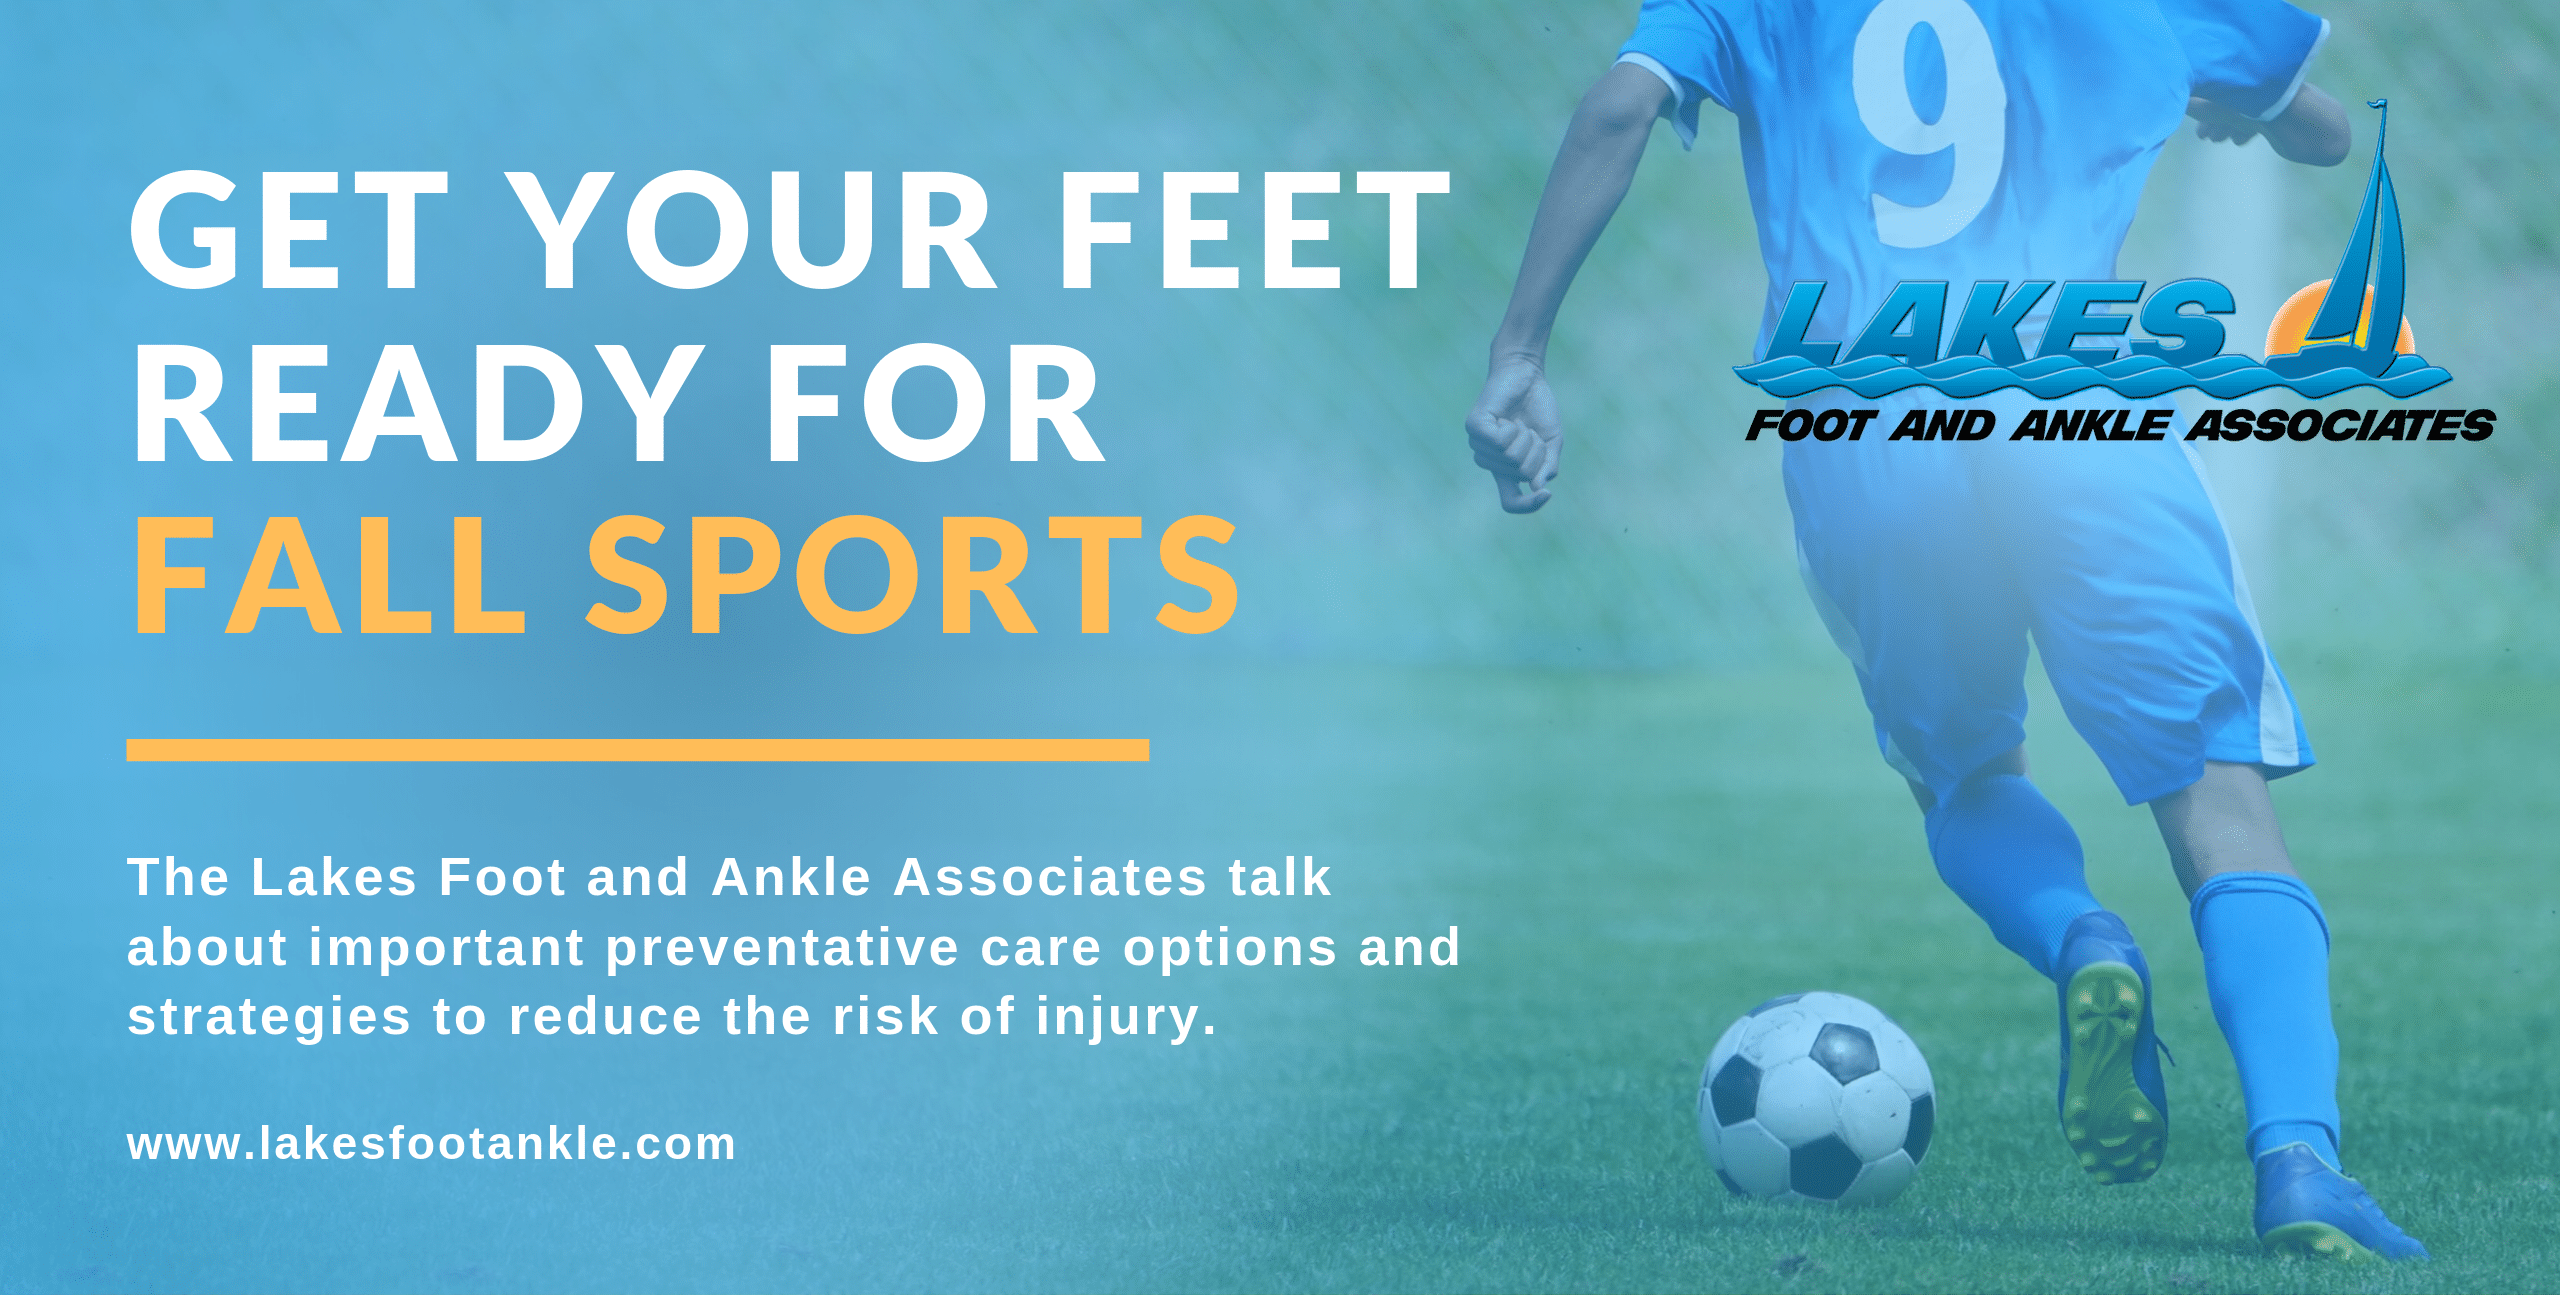 Get Your Feet Ready For Fall Sports